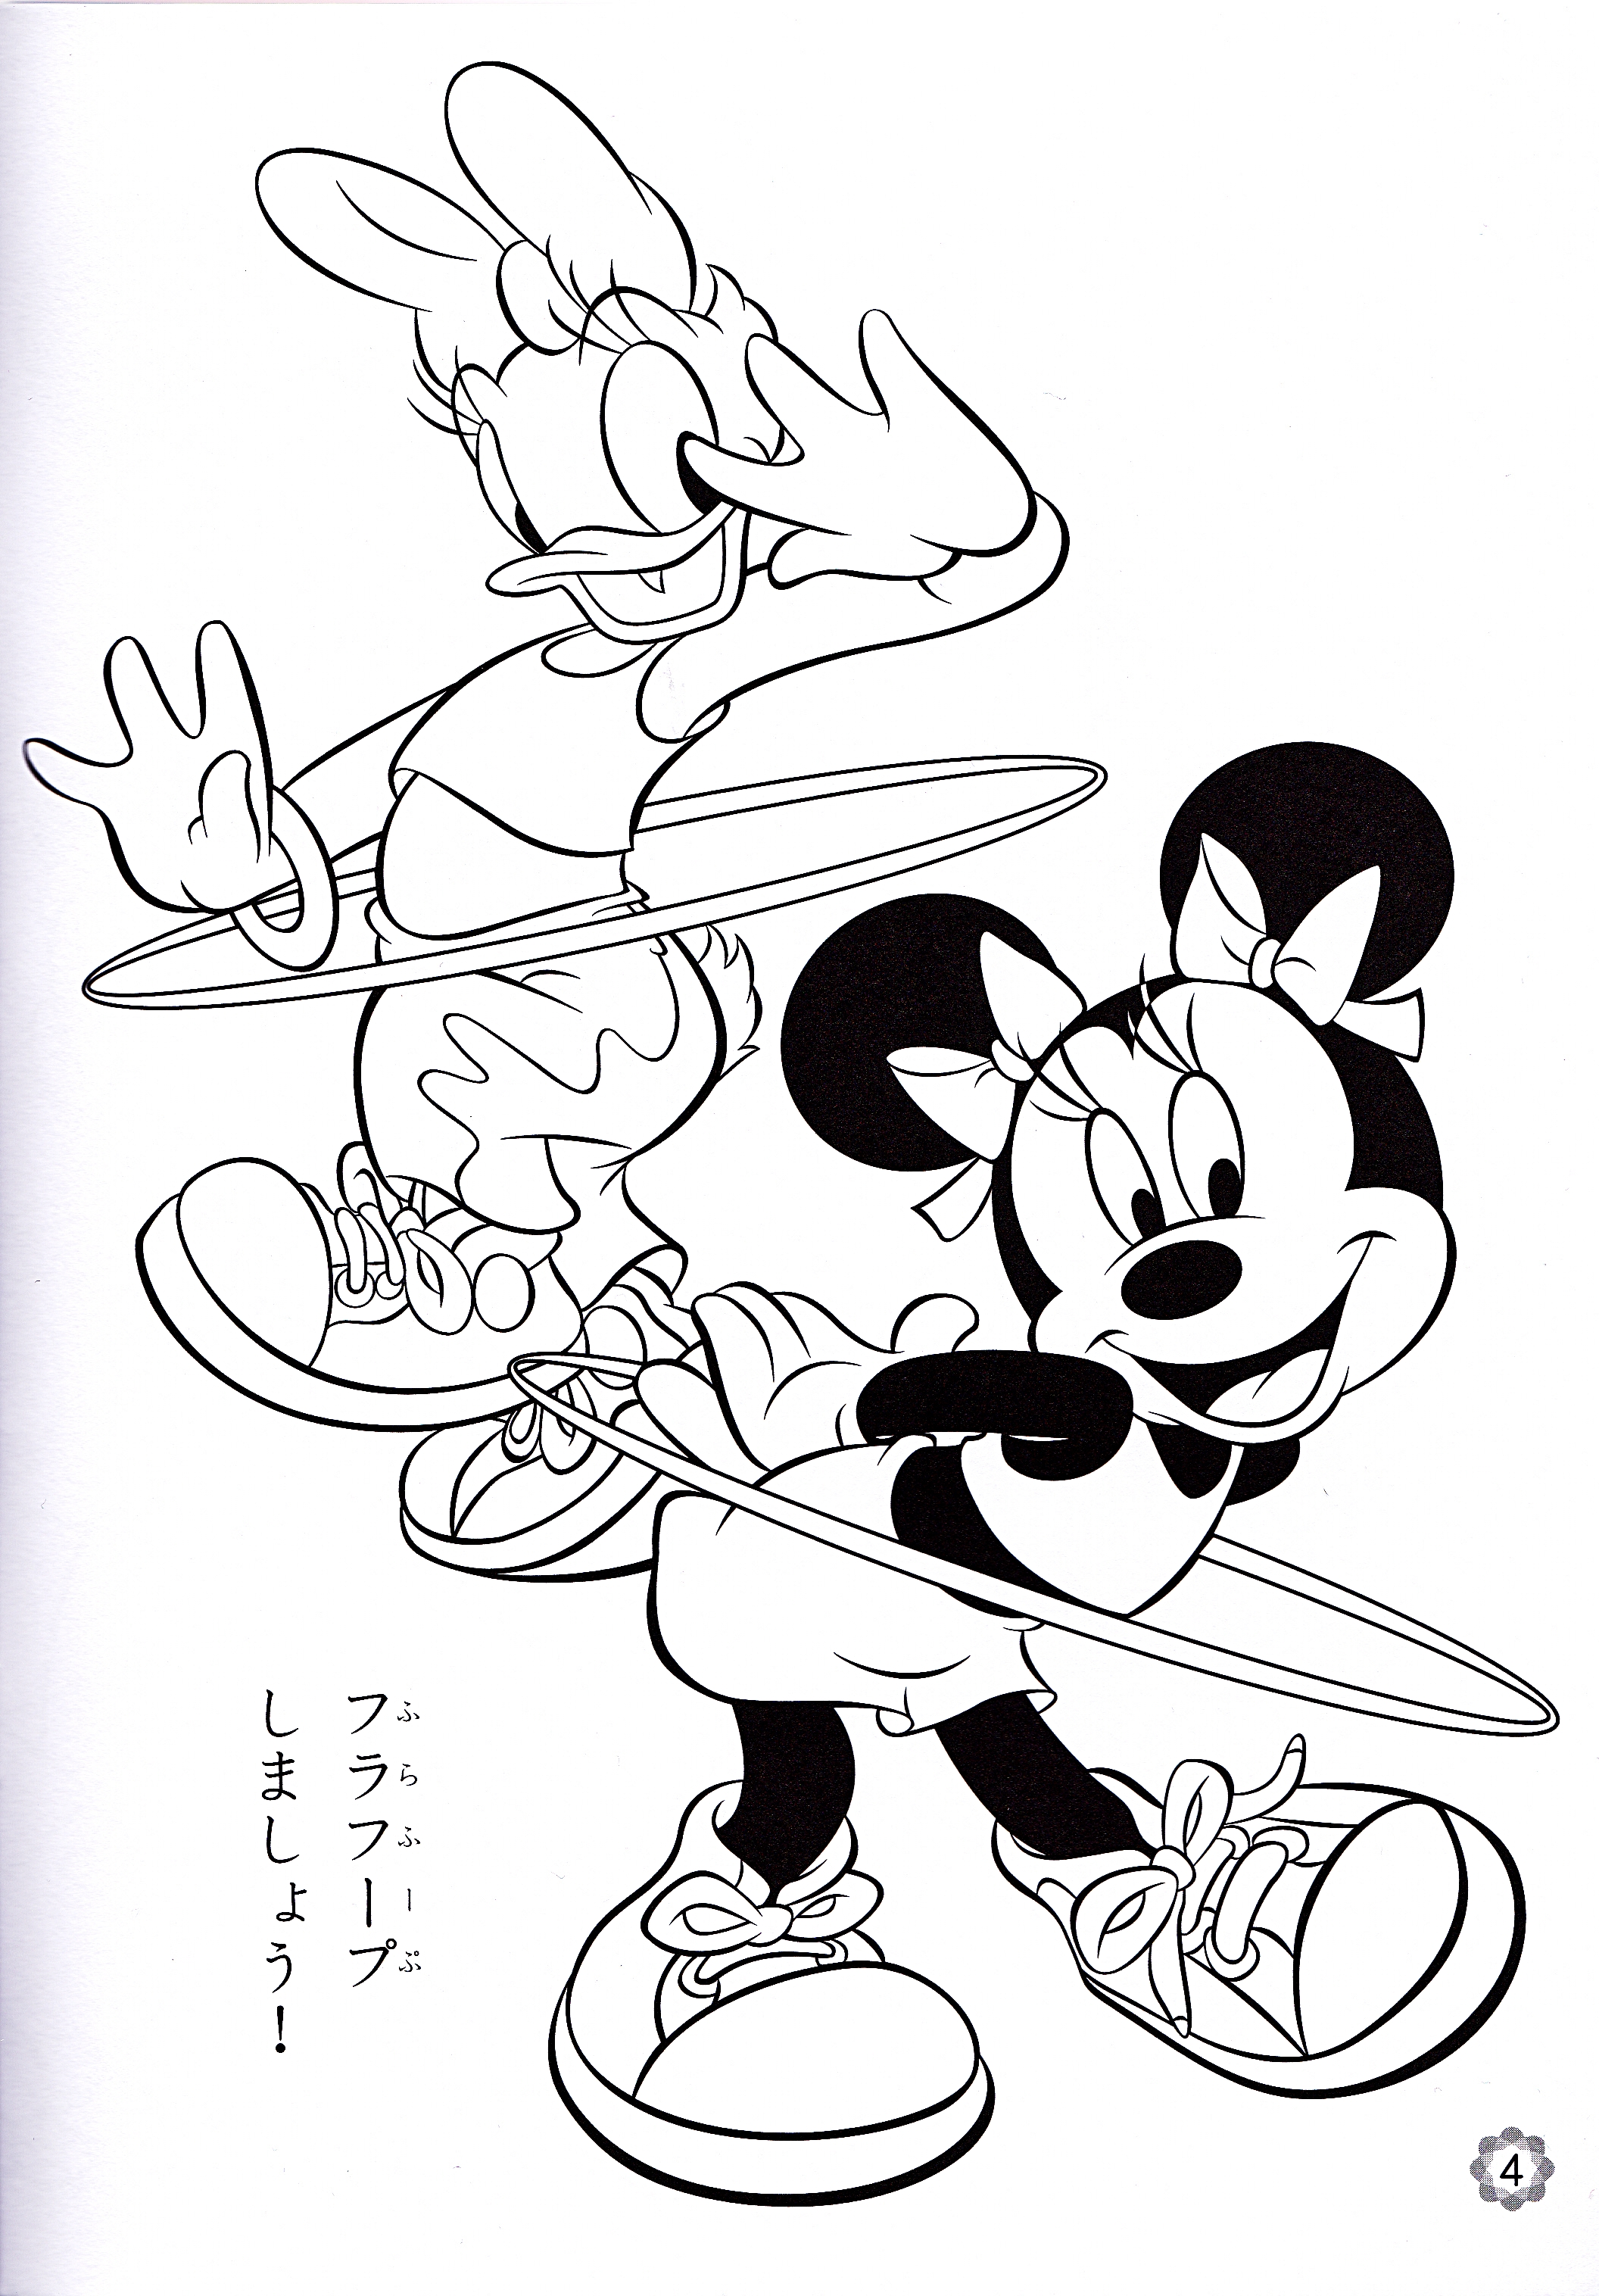 minnie and daisy coloring pages - photo#11